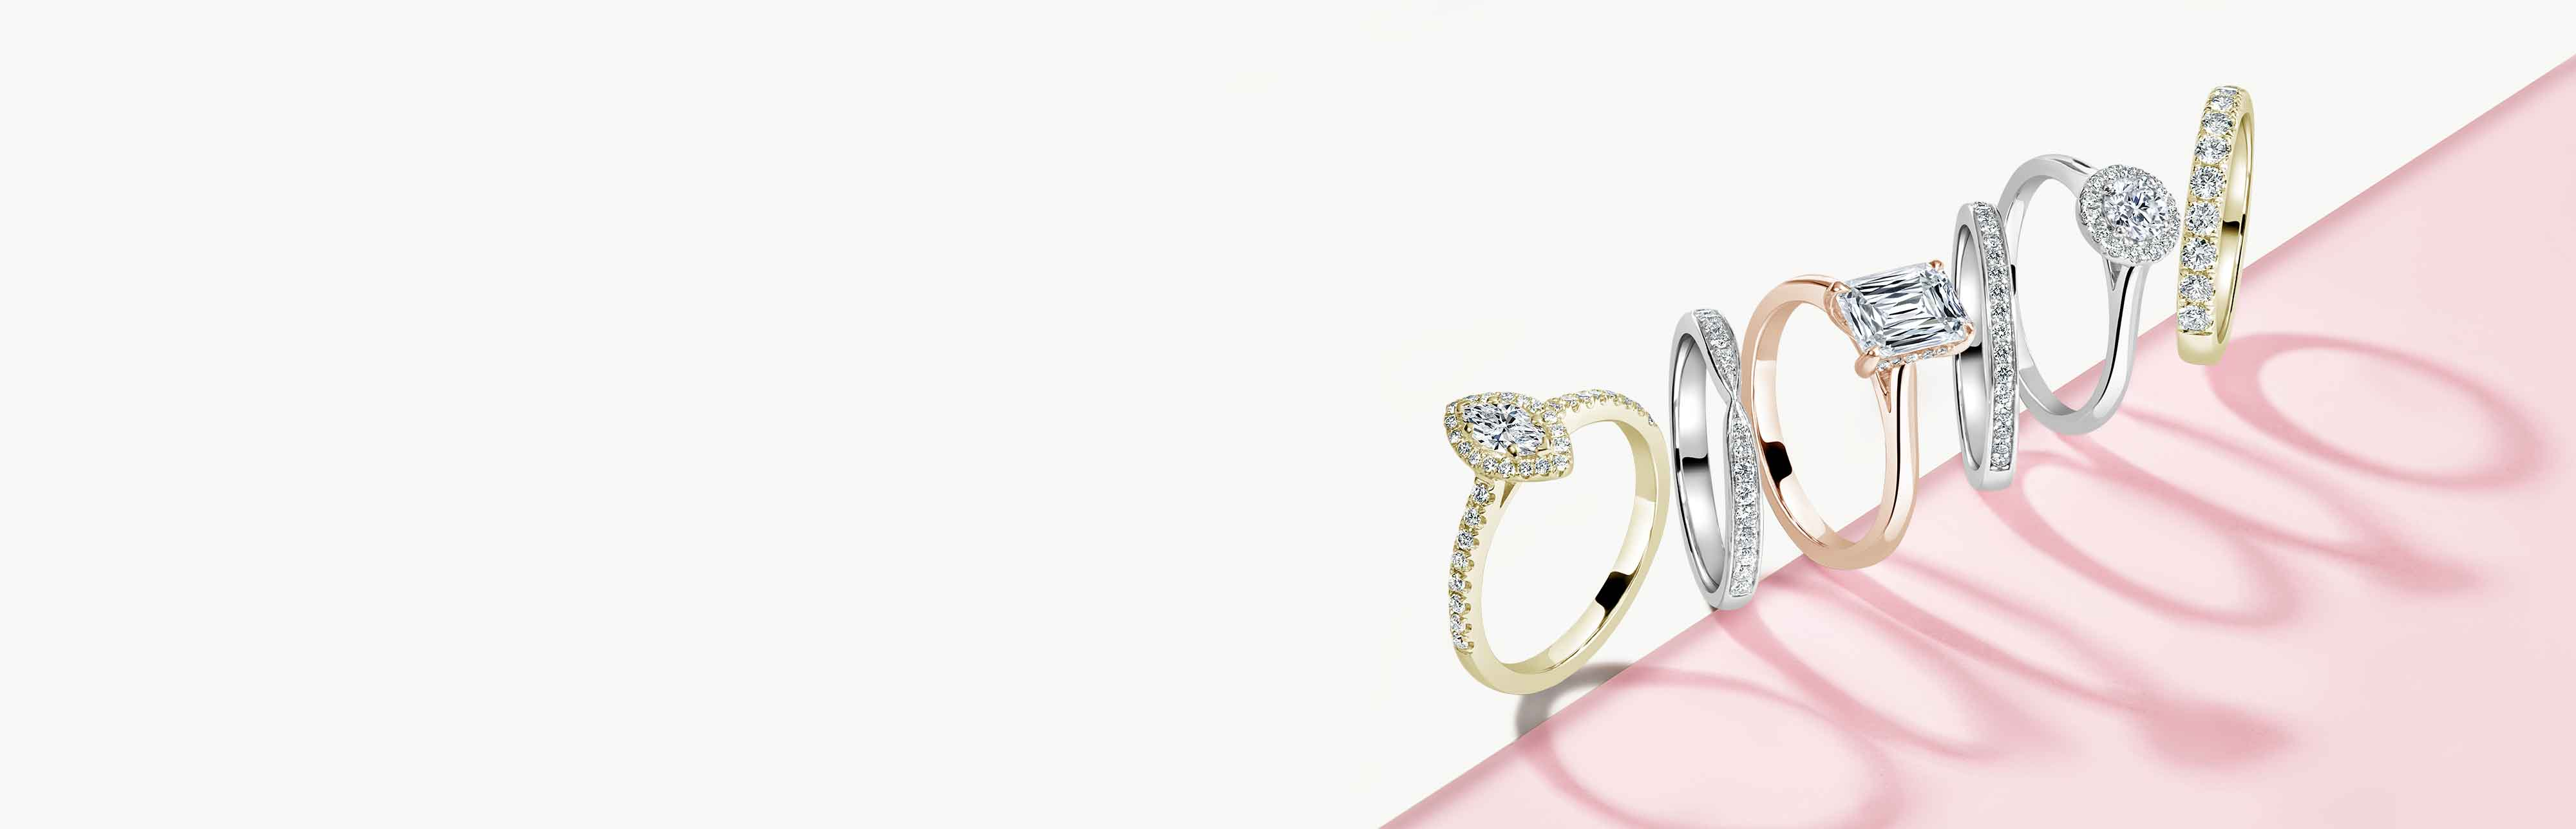 Round Brilliant Solitaire Engagement Rings